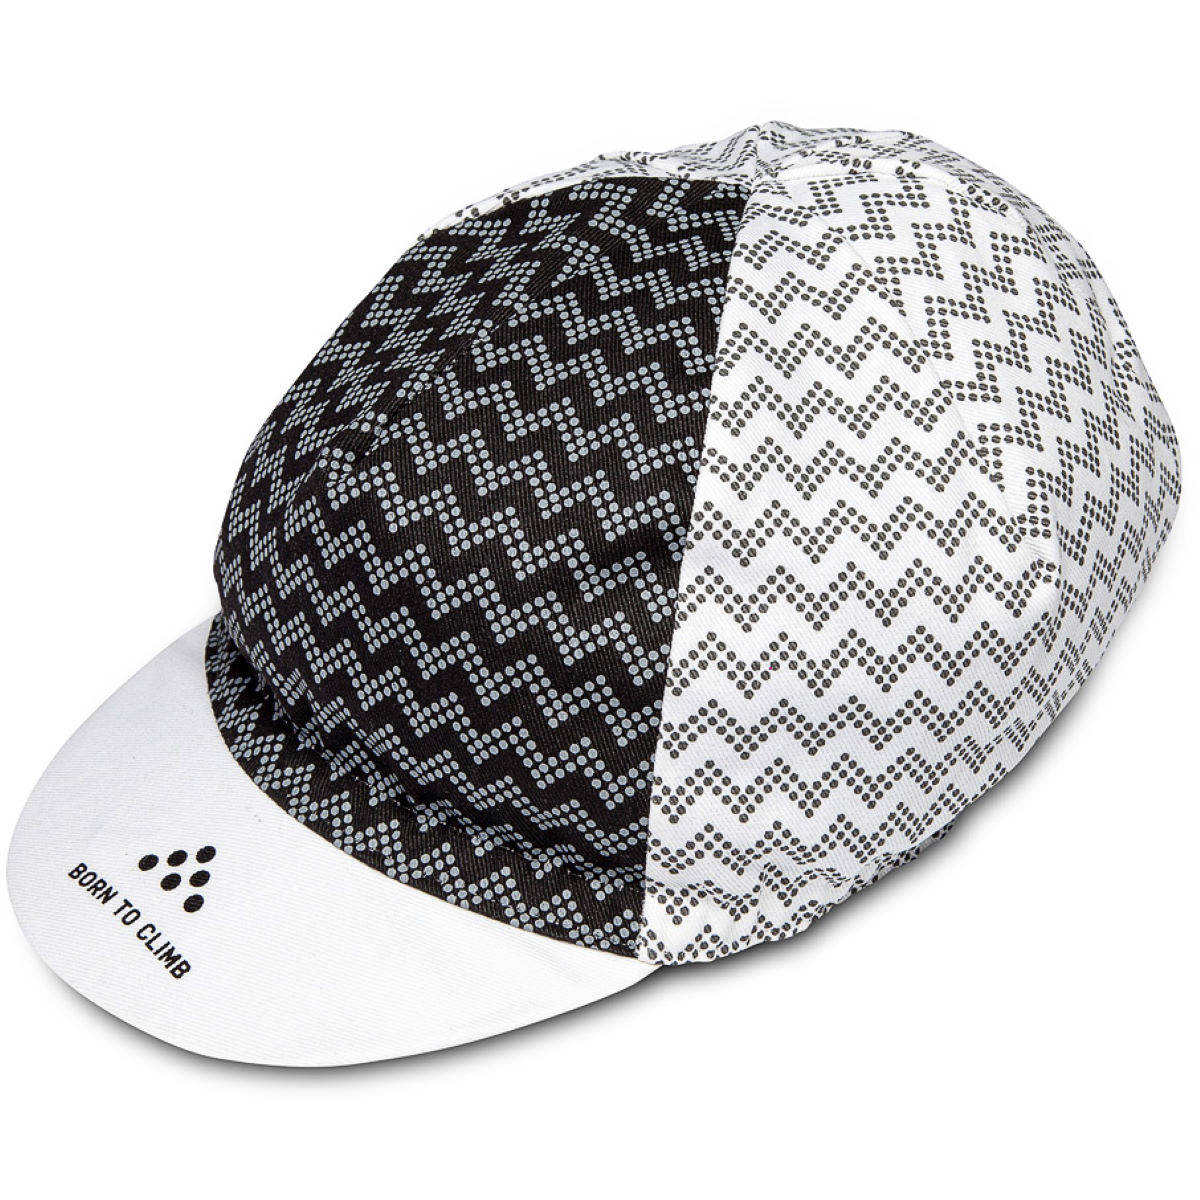 Image of Casquette Isadore Climbers - Taille unique Noir/Blanc | Casquettes